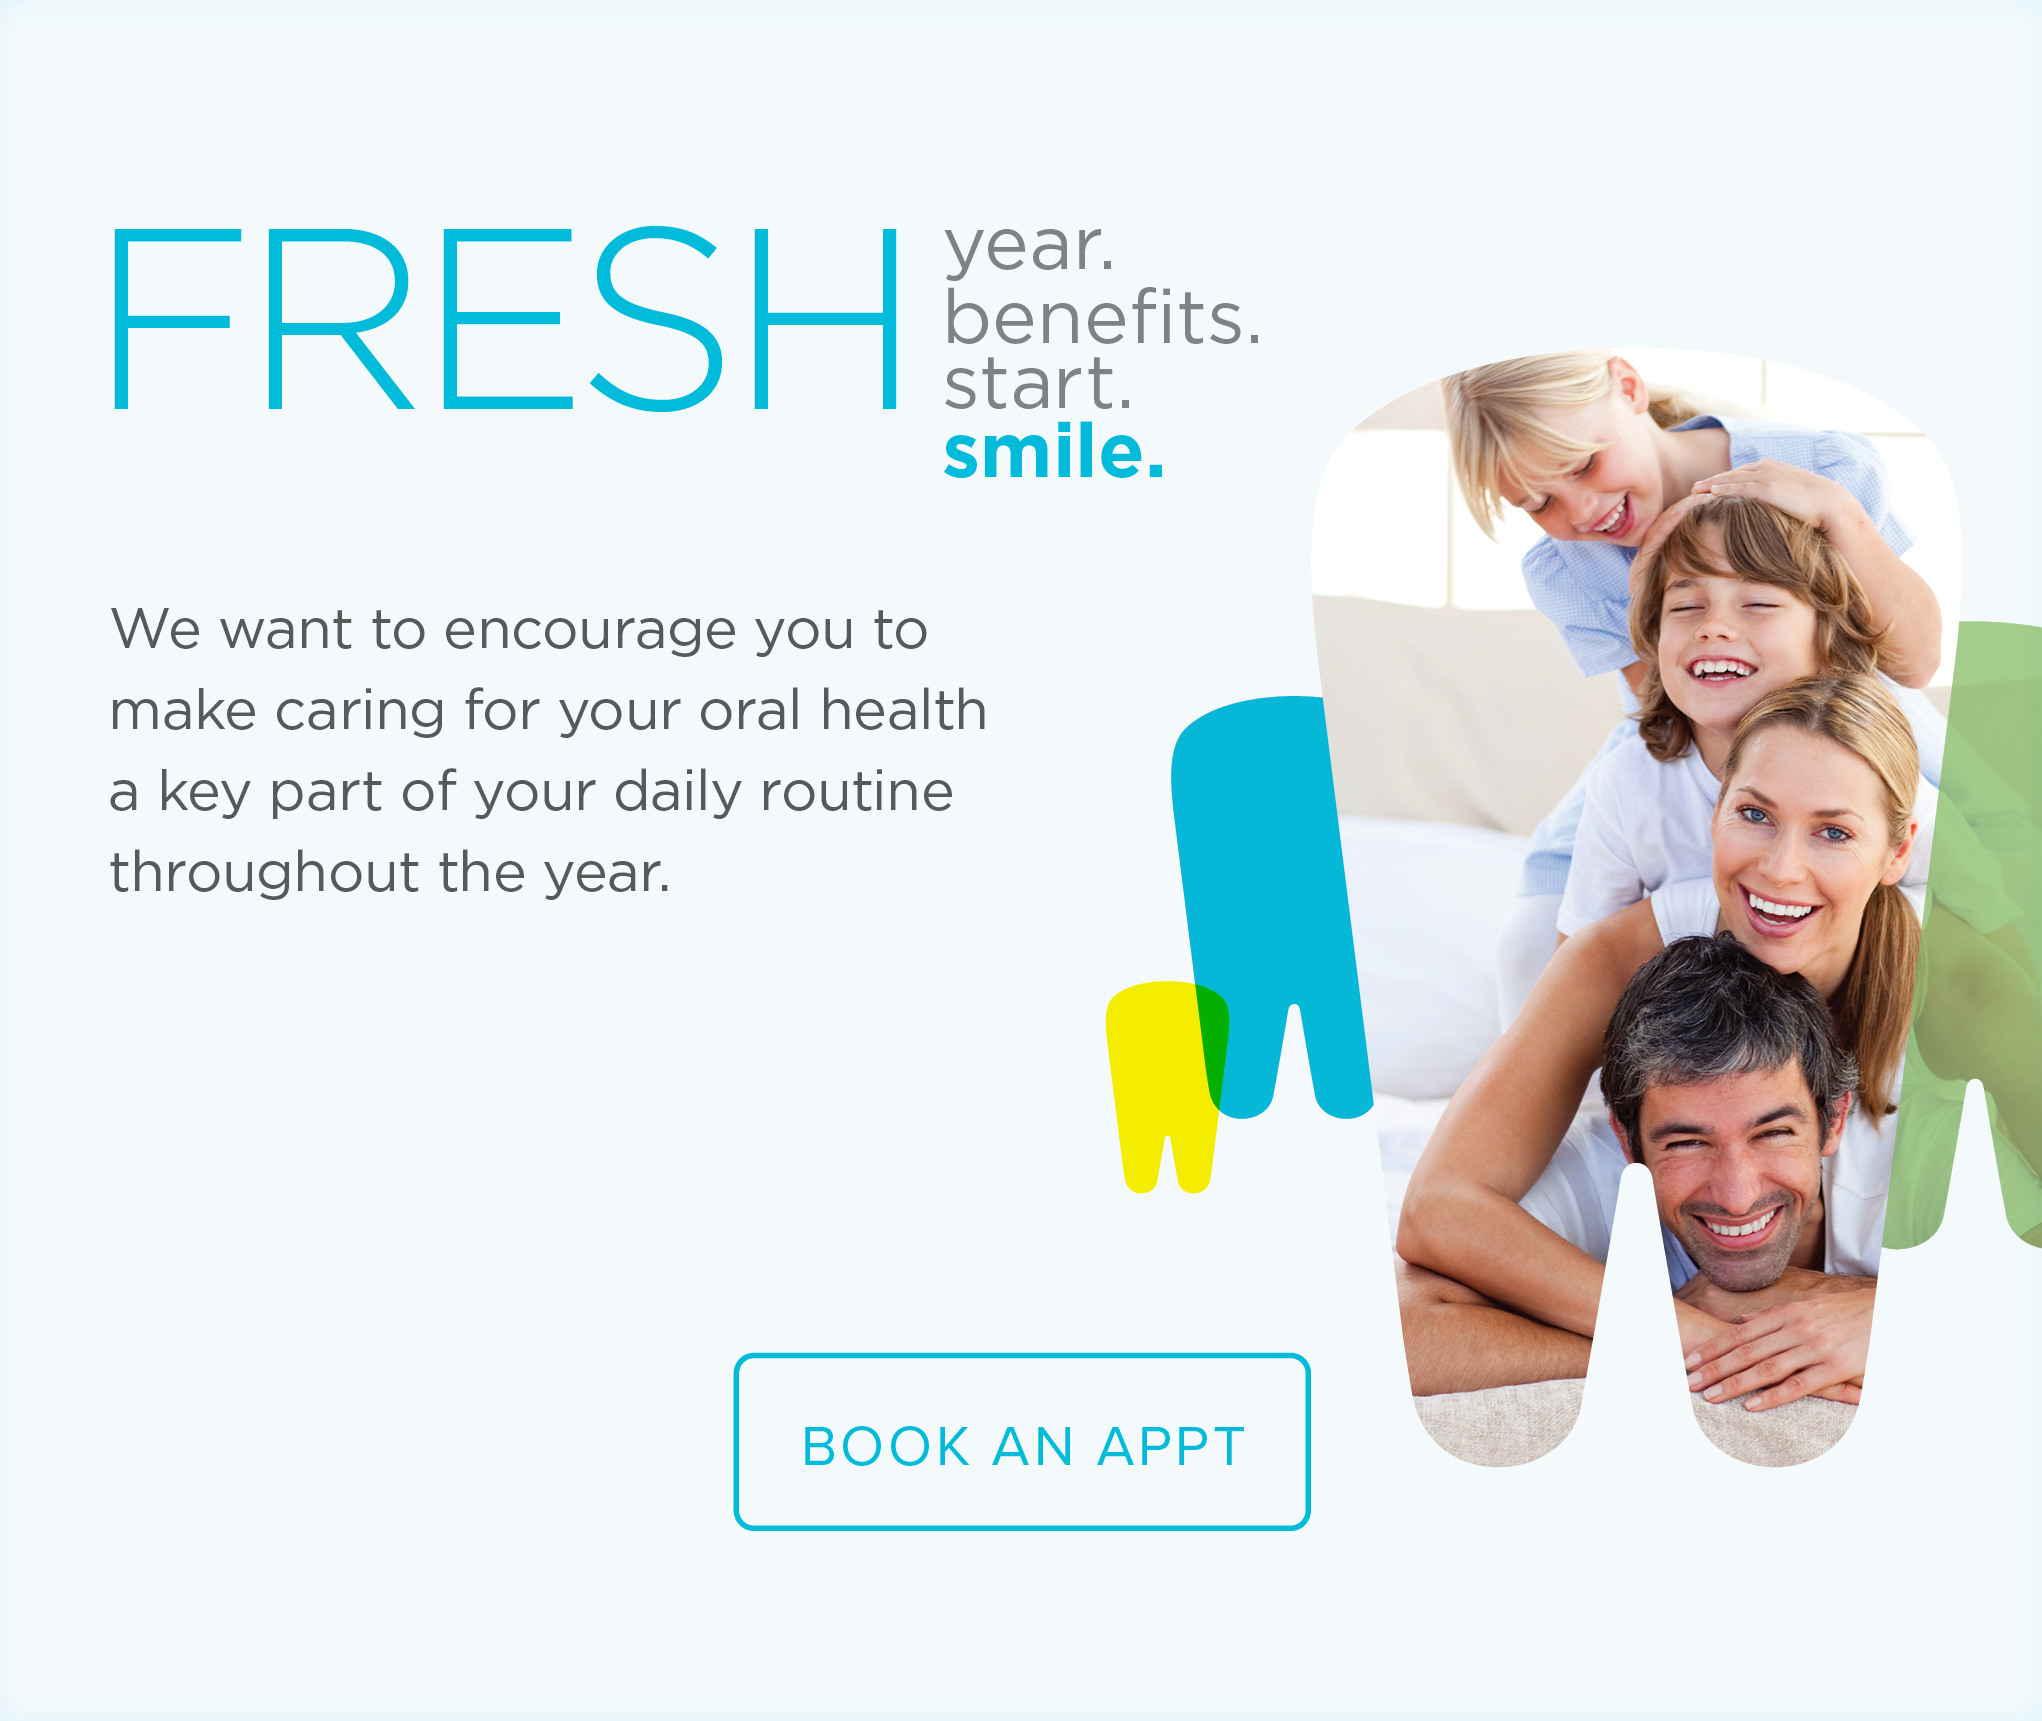 East Village Dental Group - Make the Most of Your Benefits